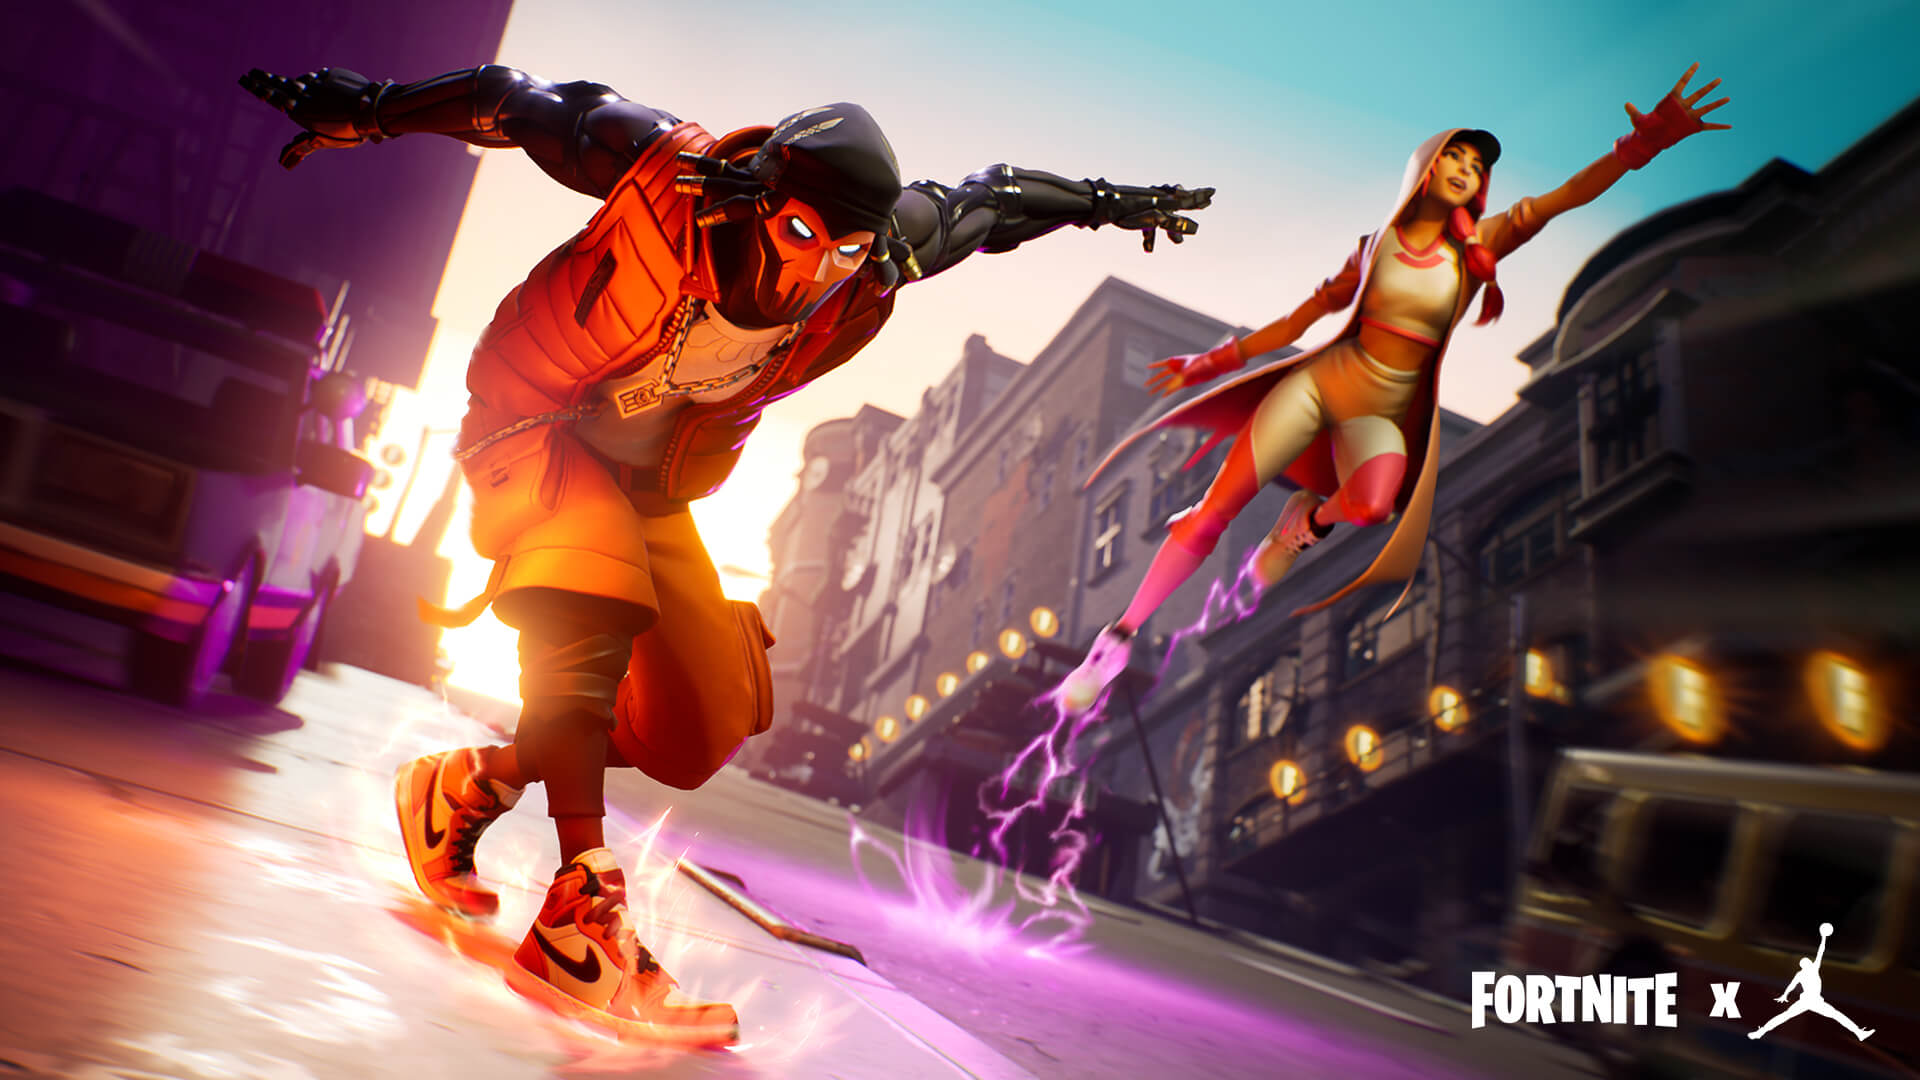 FortniteFortnite x Jumpman - Downtown Drop LTM Screenx Jordan collab screen